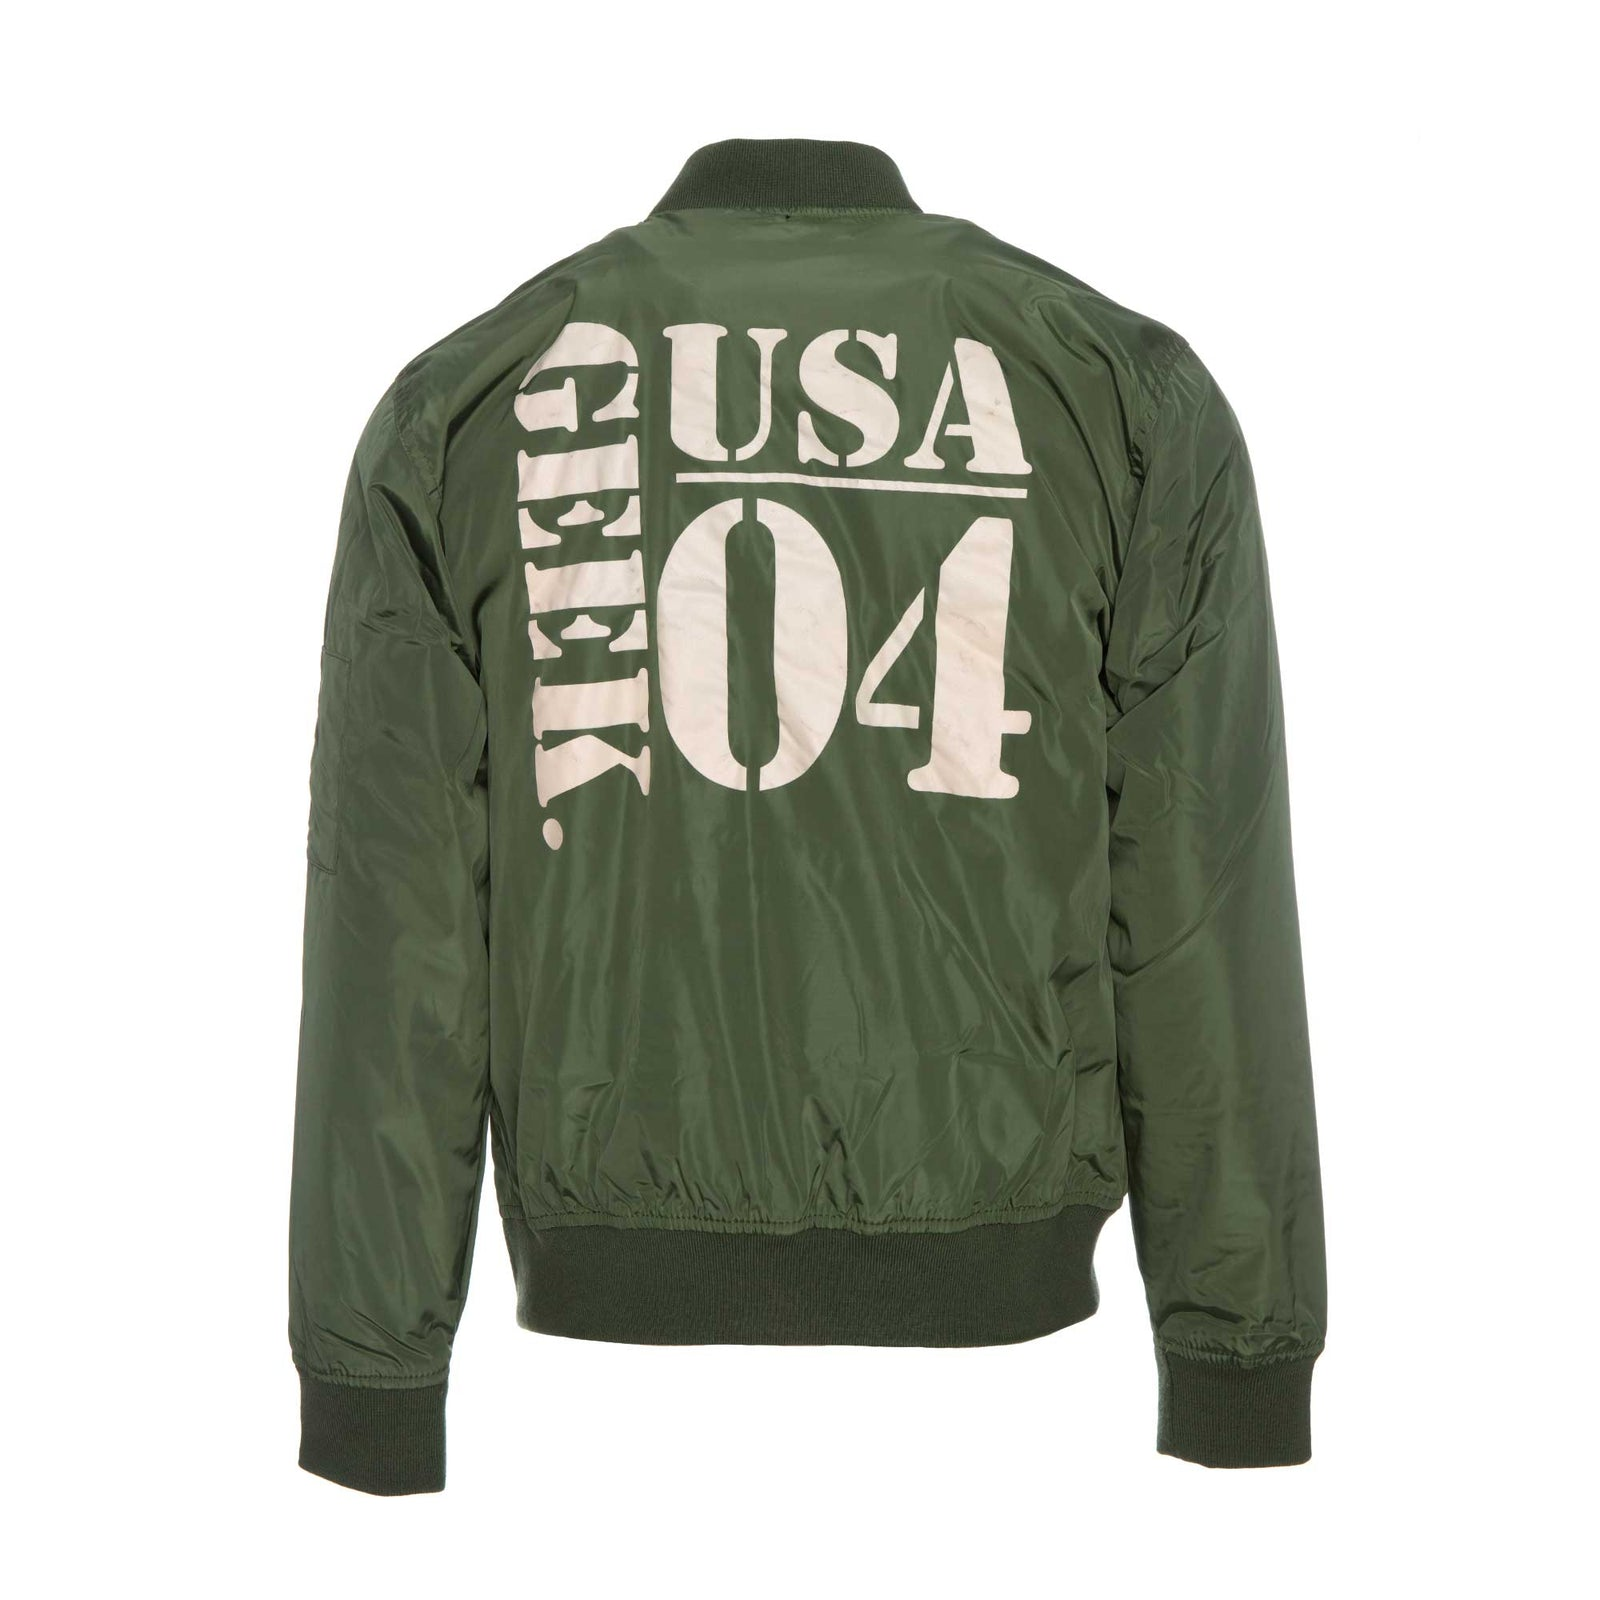 Fashion Geek by Alonzo Jackson Army Style Geek Jacket Dark Green